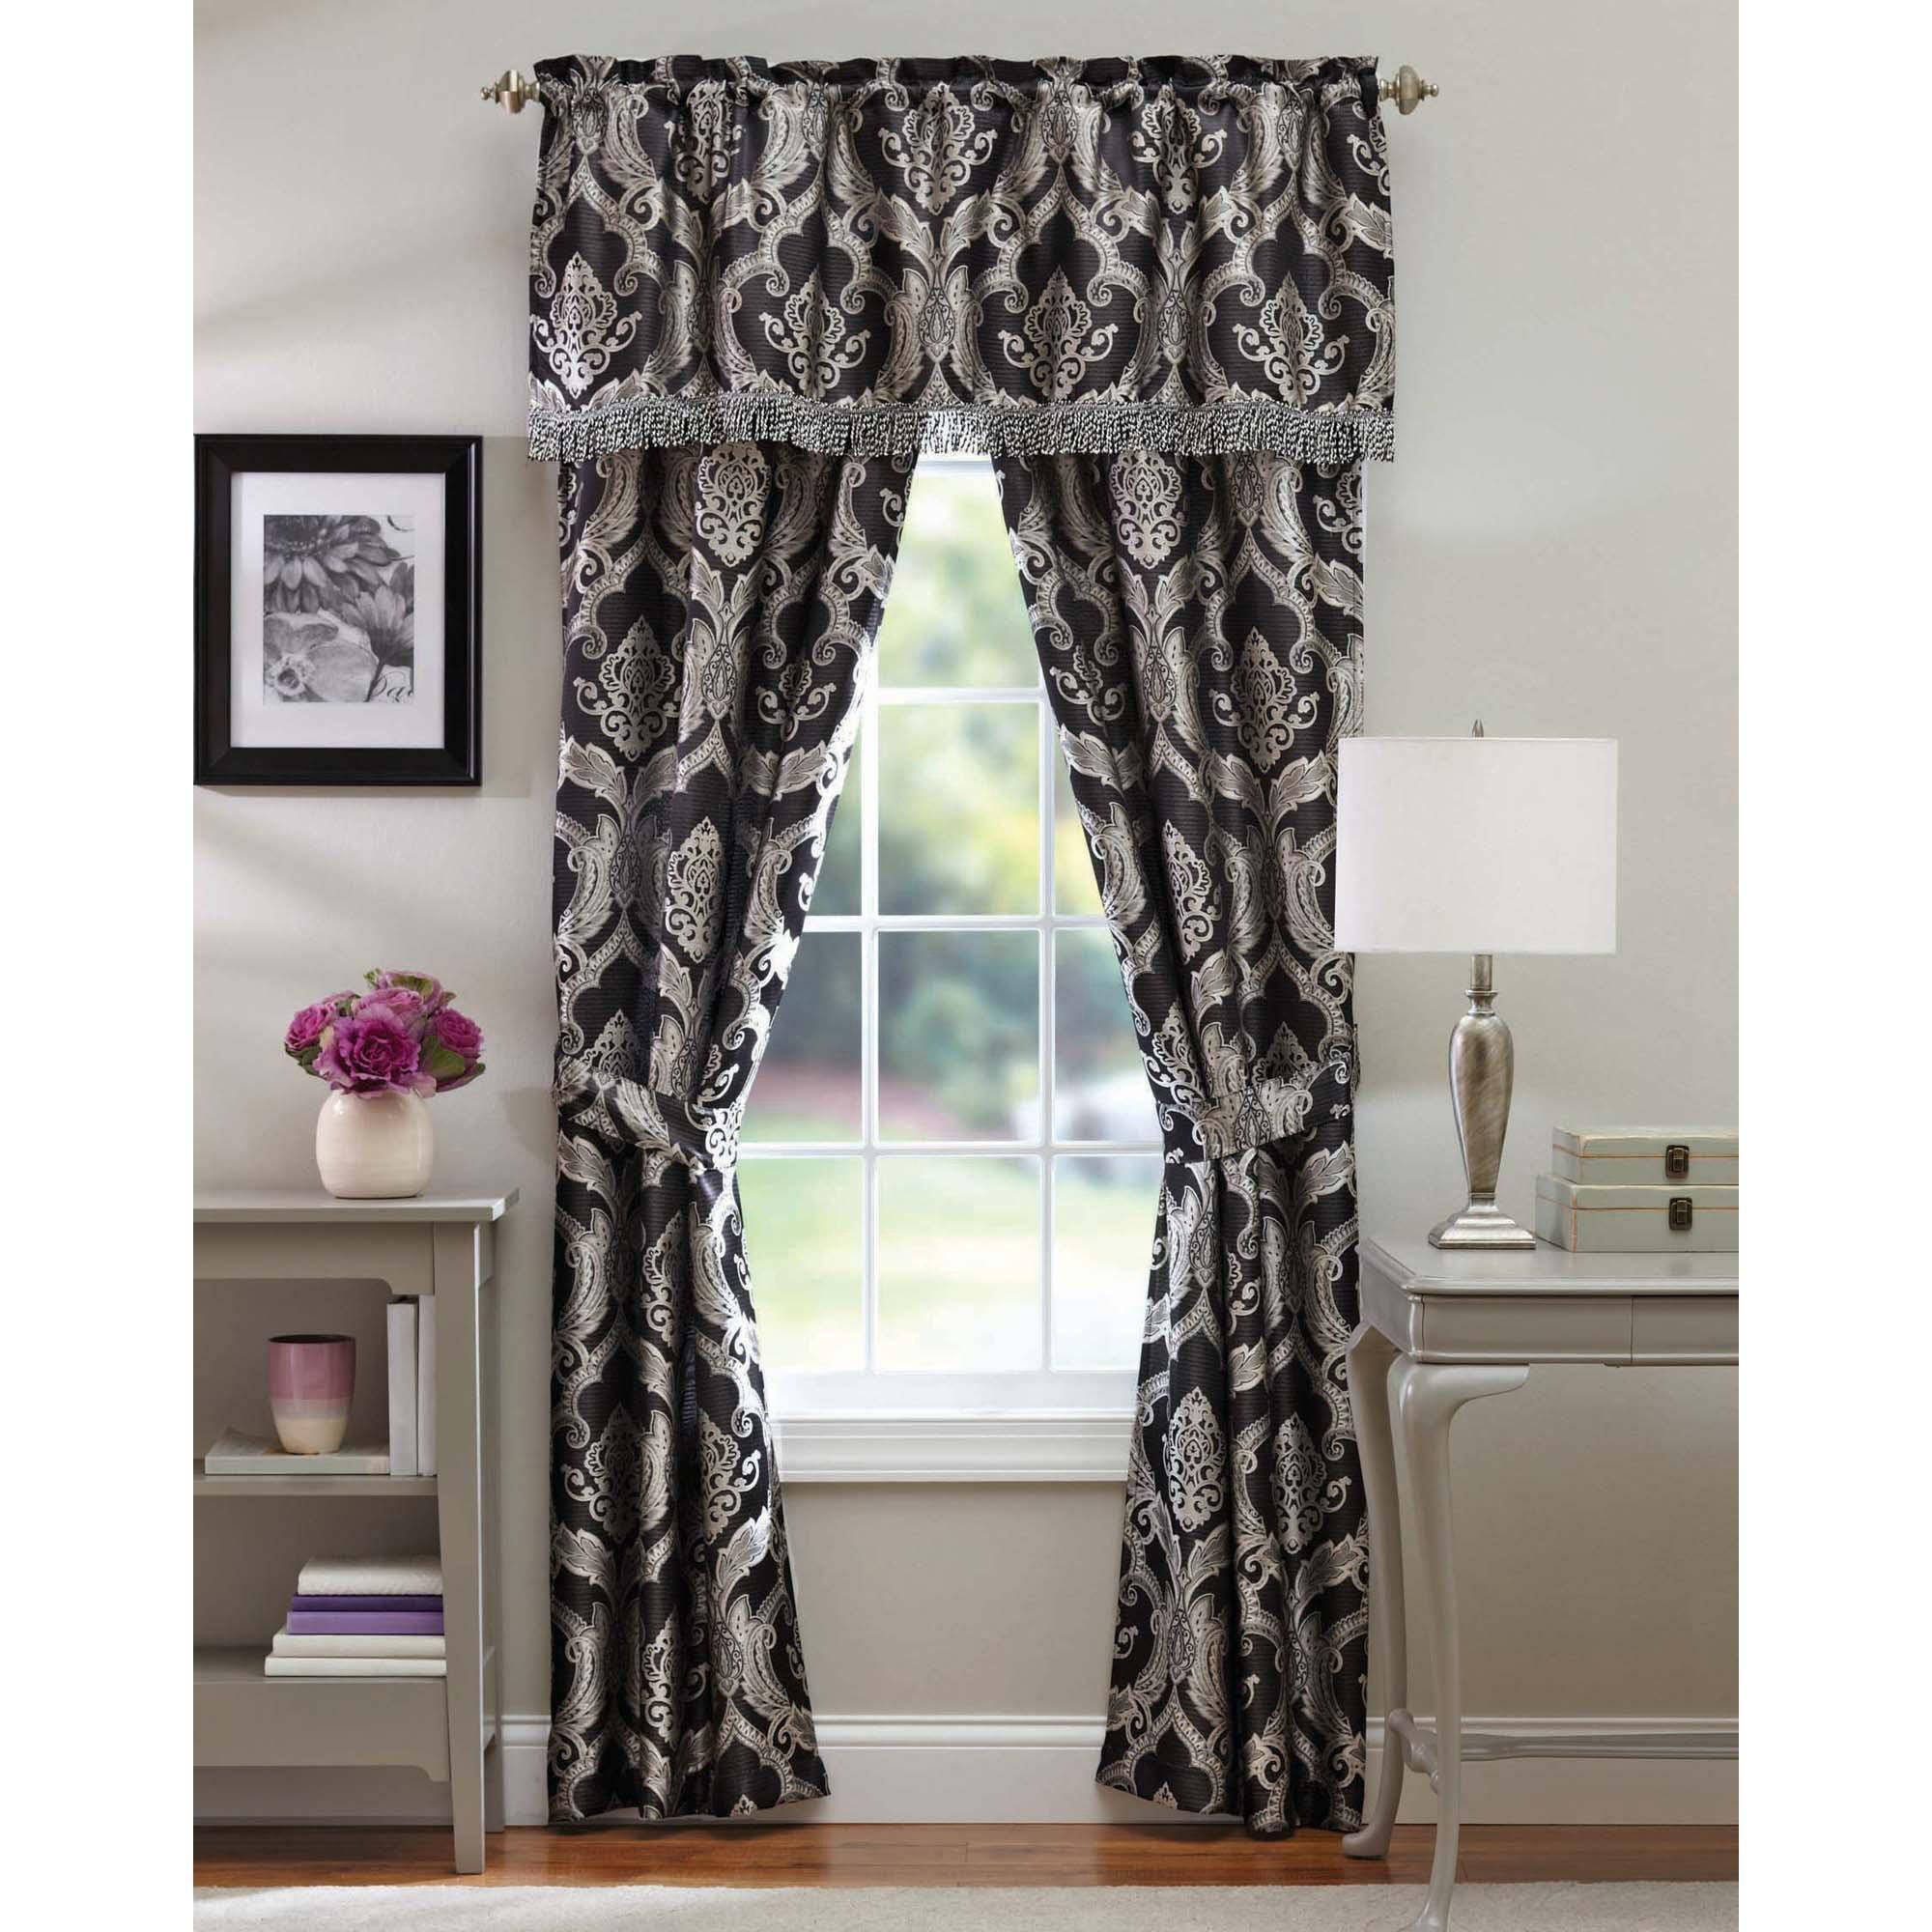 Better Homes and Gardens Brocade Jacquard 5-Piece Curtain Panel Set